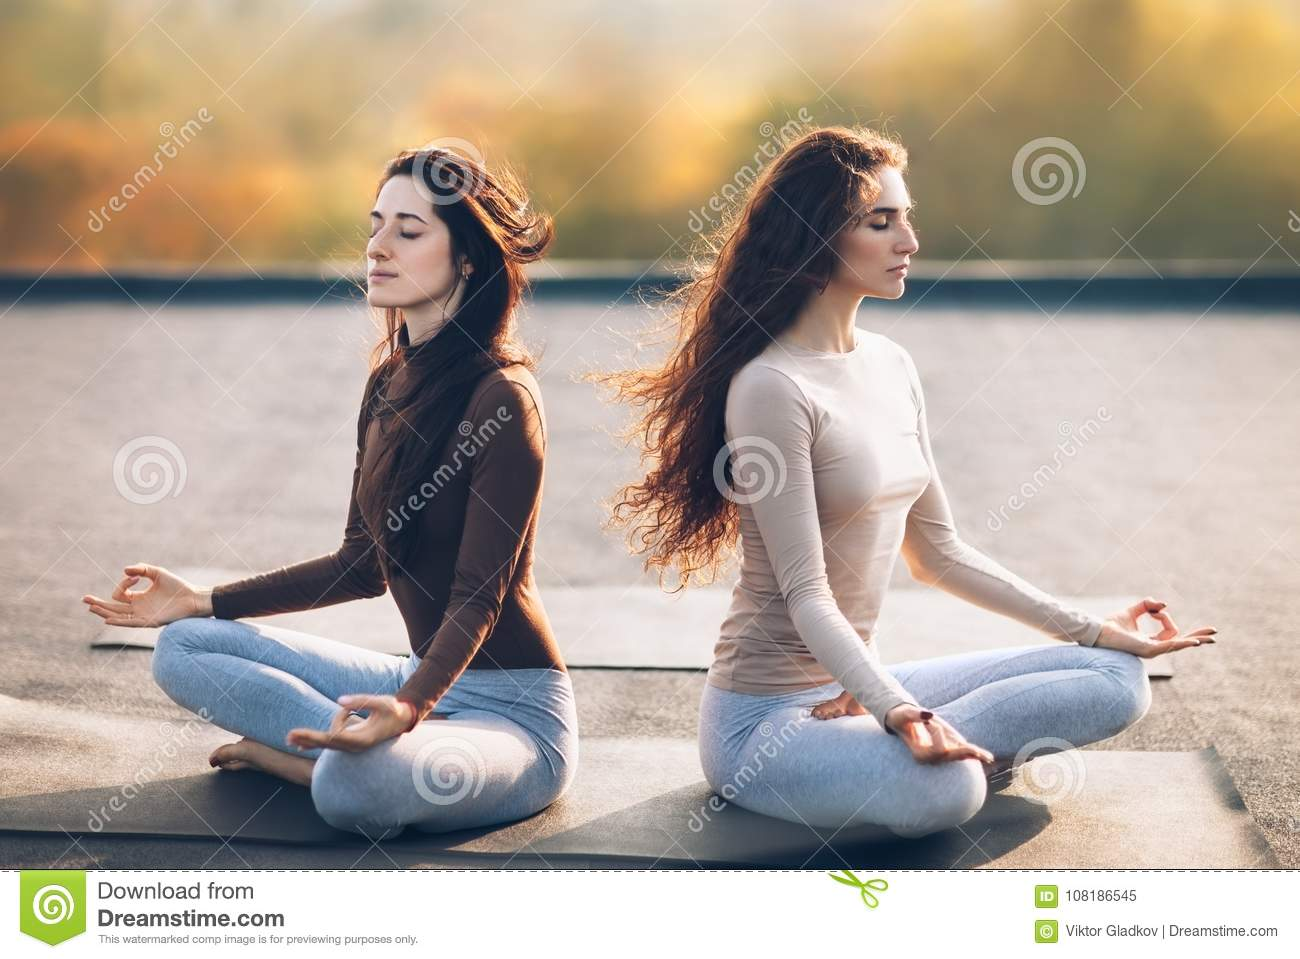 Two young women meditating in Lotus Pose on the roof outdoor